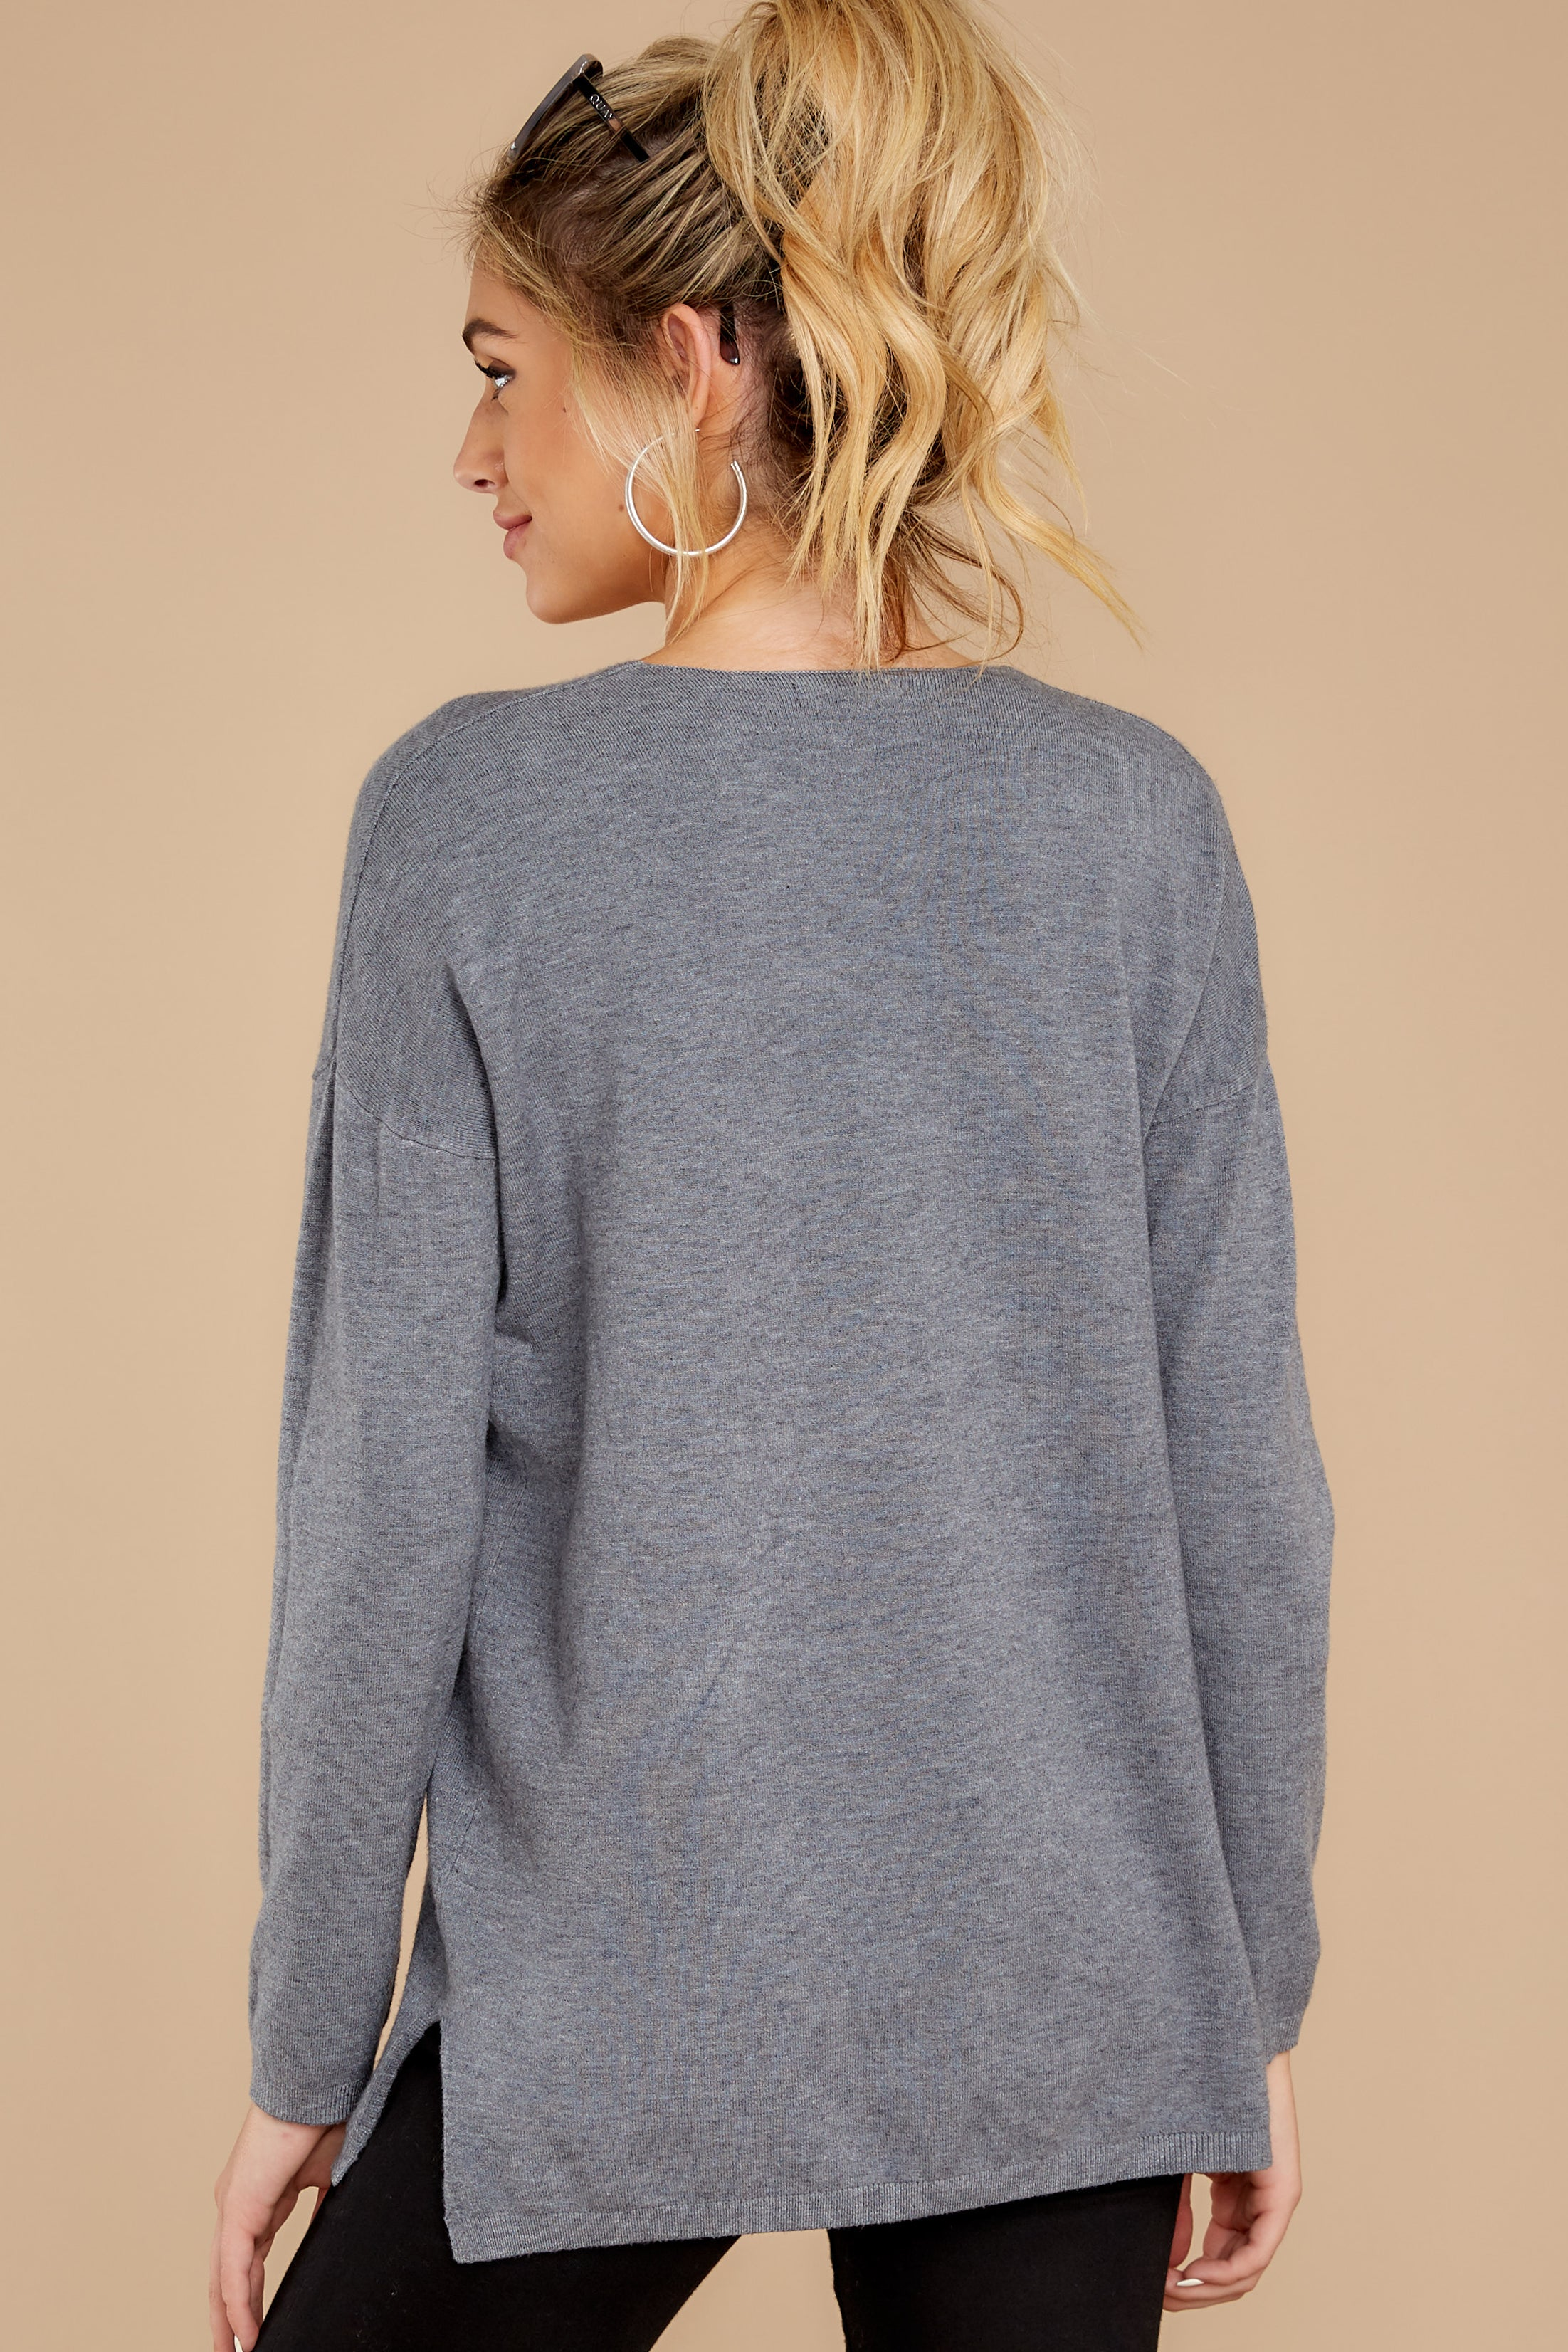 8 Give It A Rest Charcoal Grey Sweater at reddressboutique.com